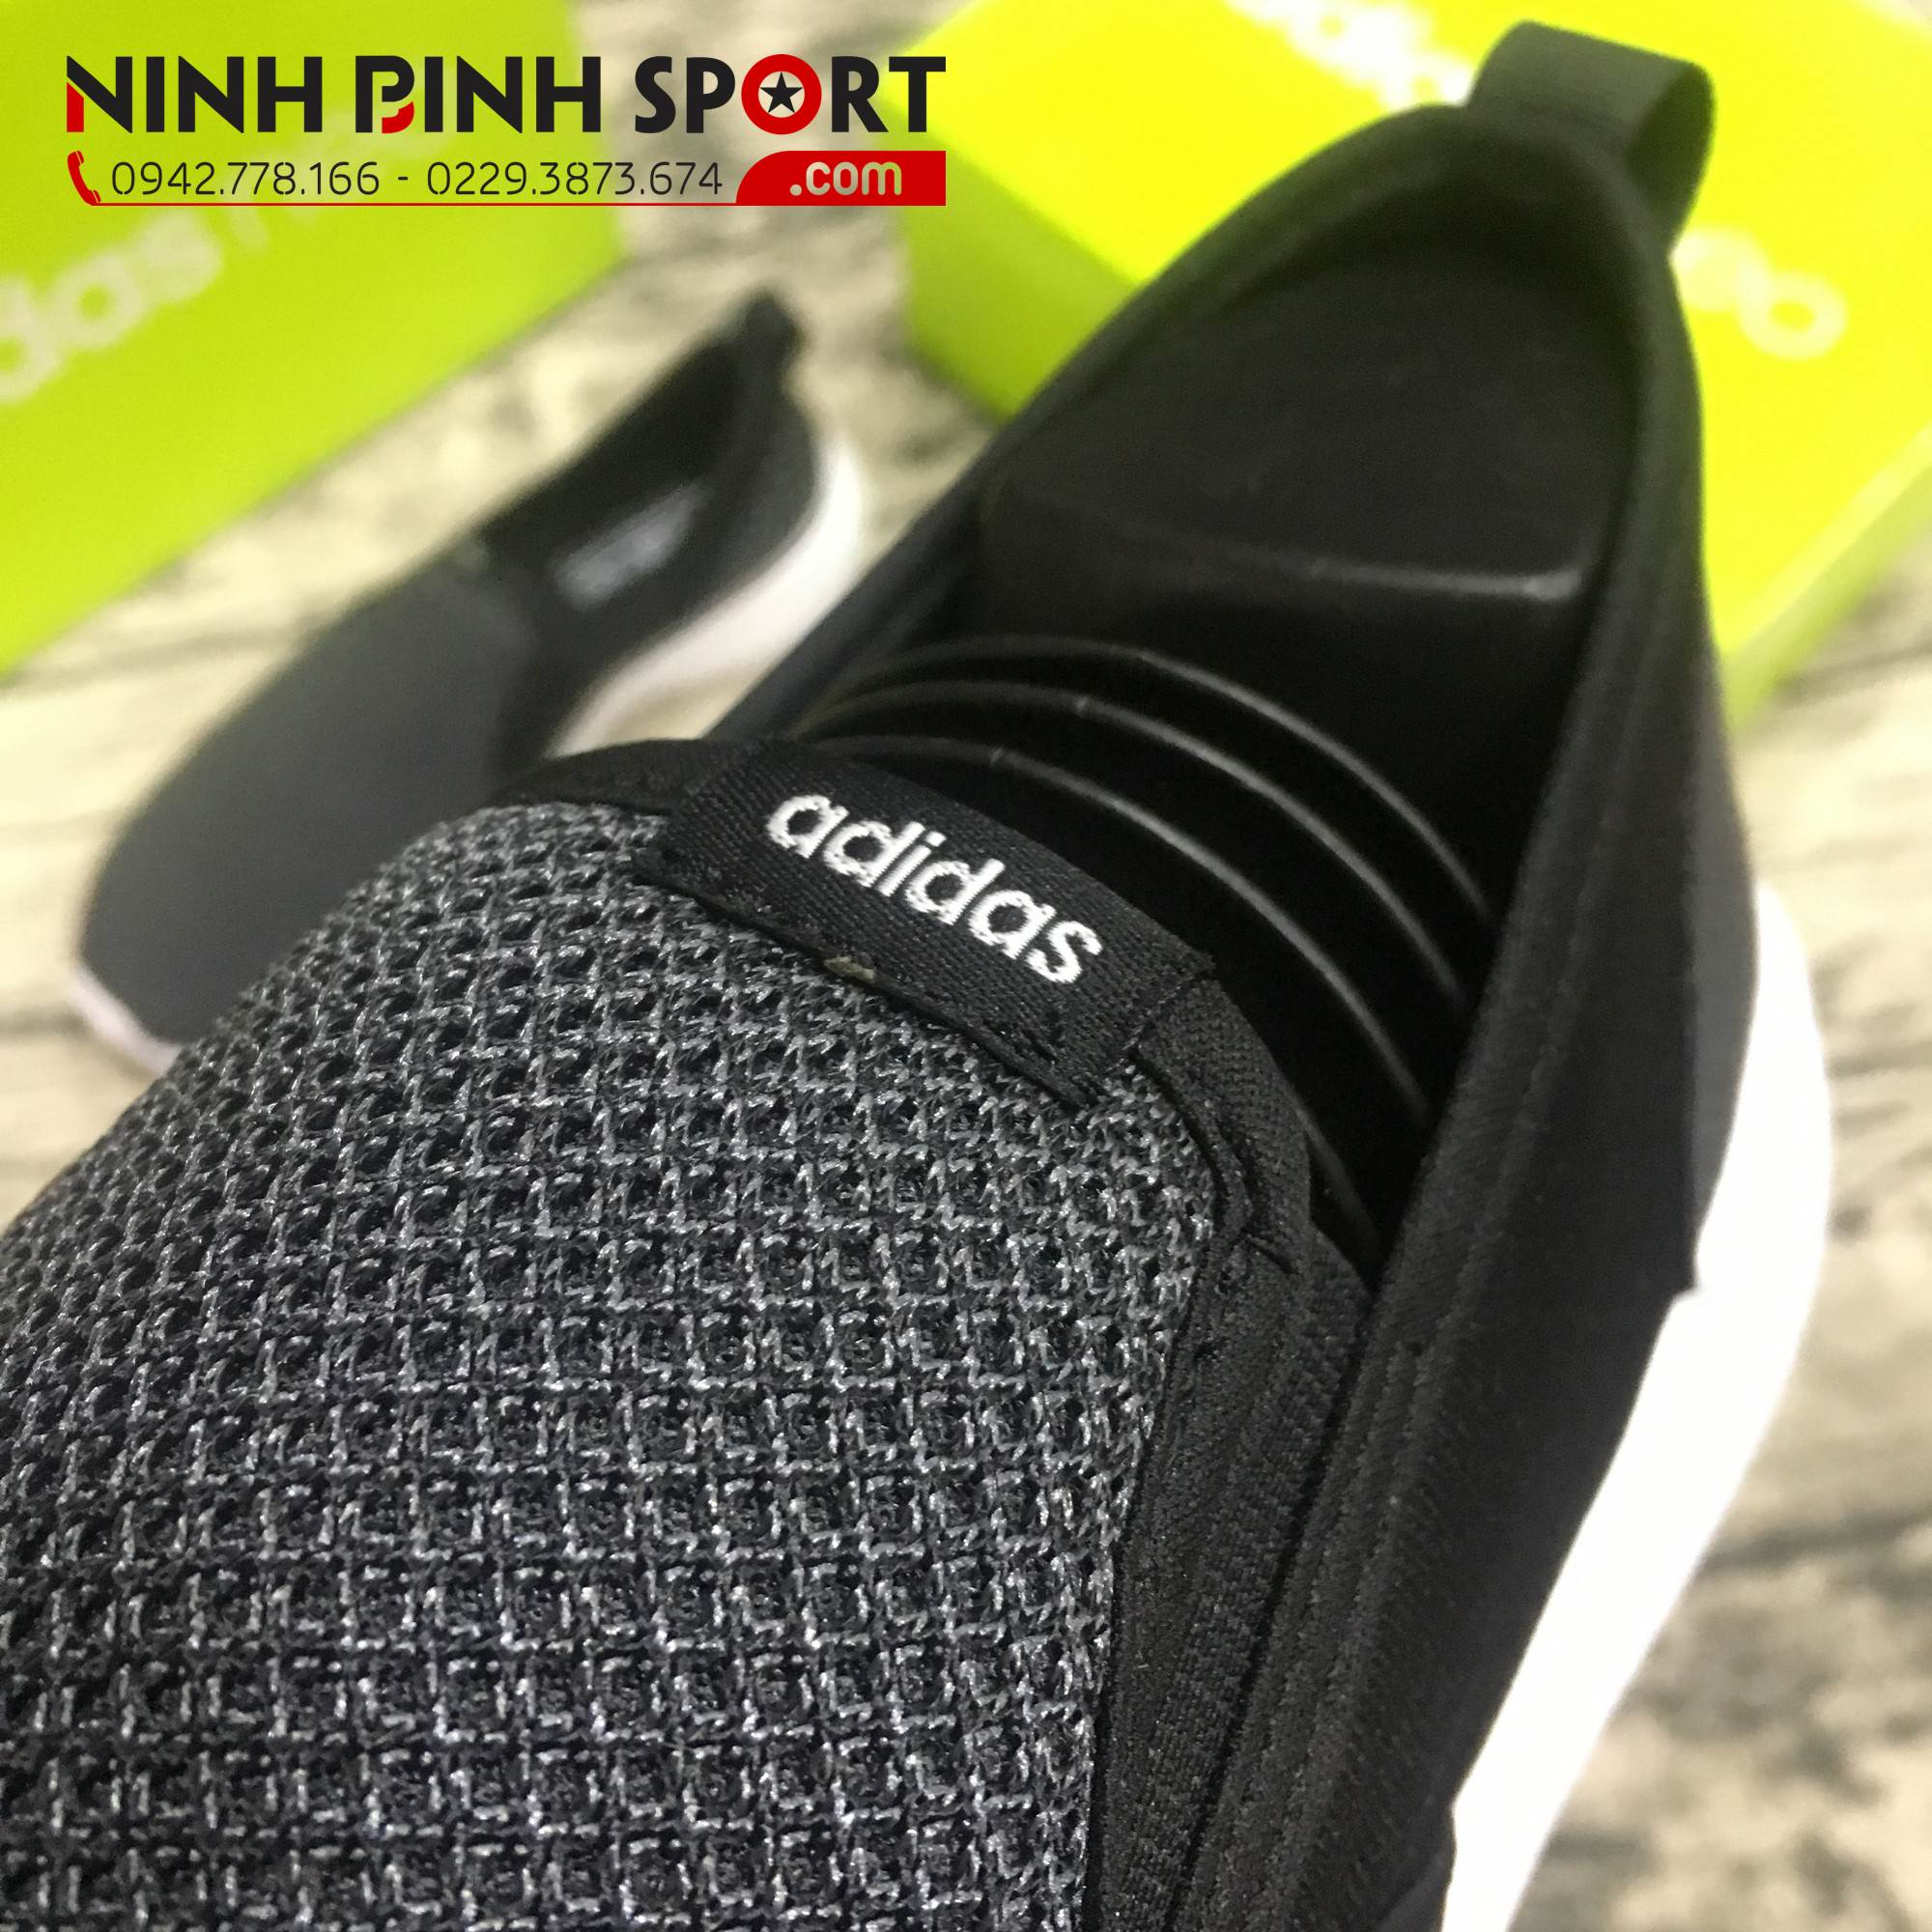 Adidas Neo Cloudfoam Lite Racer So Slipper Black AW4187